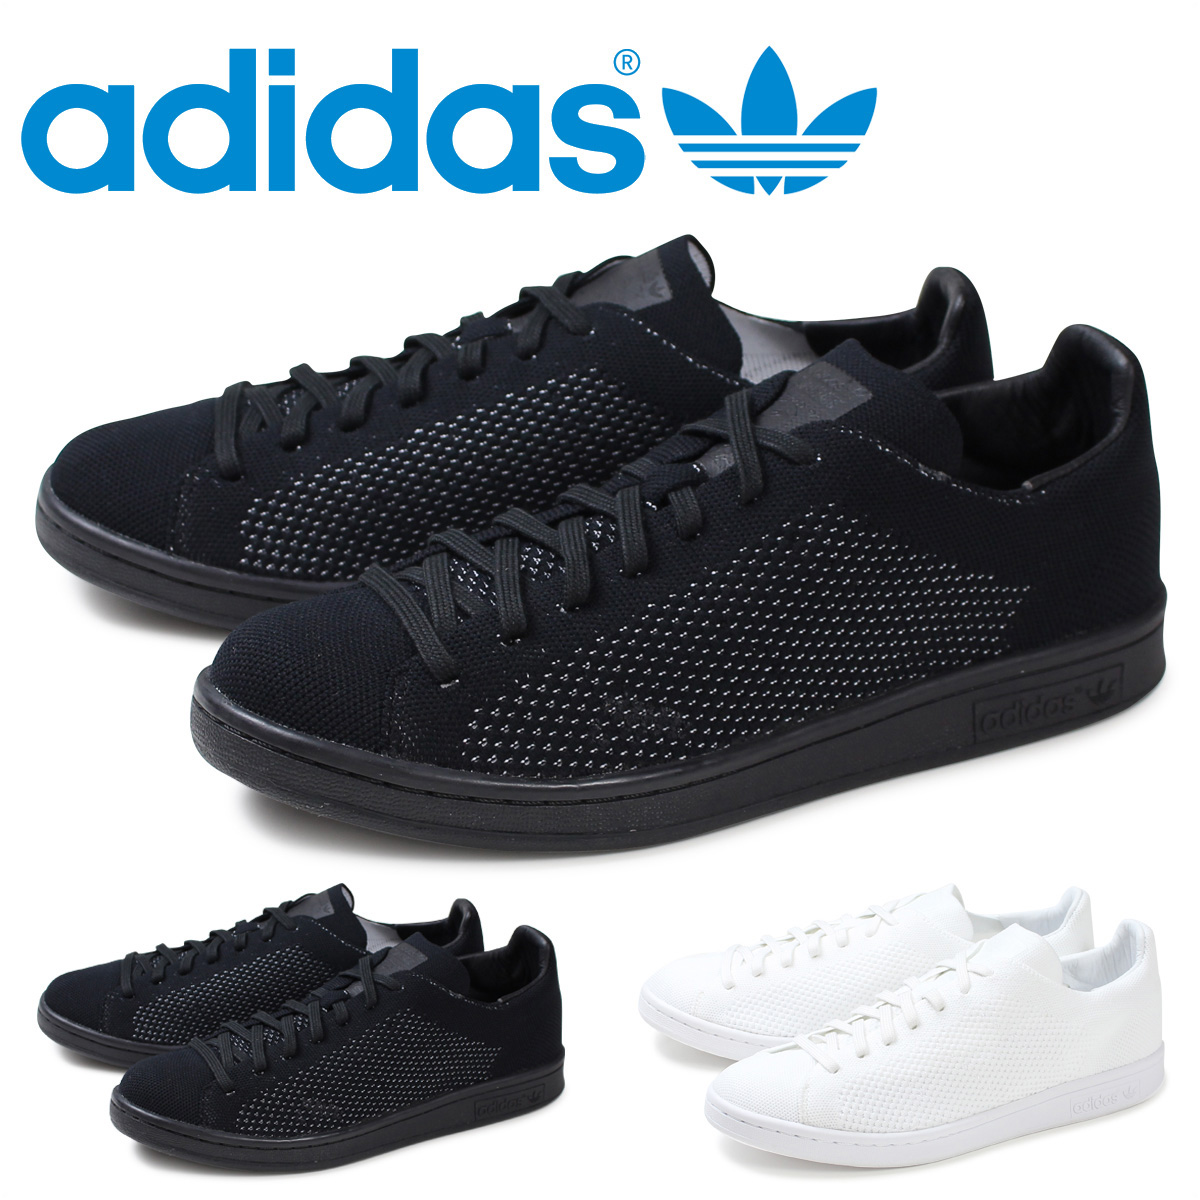 cheap for discount 0b047 6ca8b adidas adidas Stan Smith sneakers STAN SMITH PRIMEKNIT BB S80065 men's  shoes white black [10/13 new in stock]